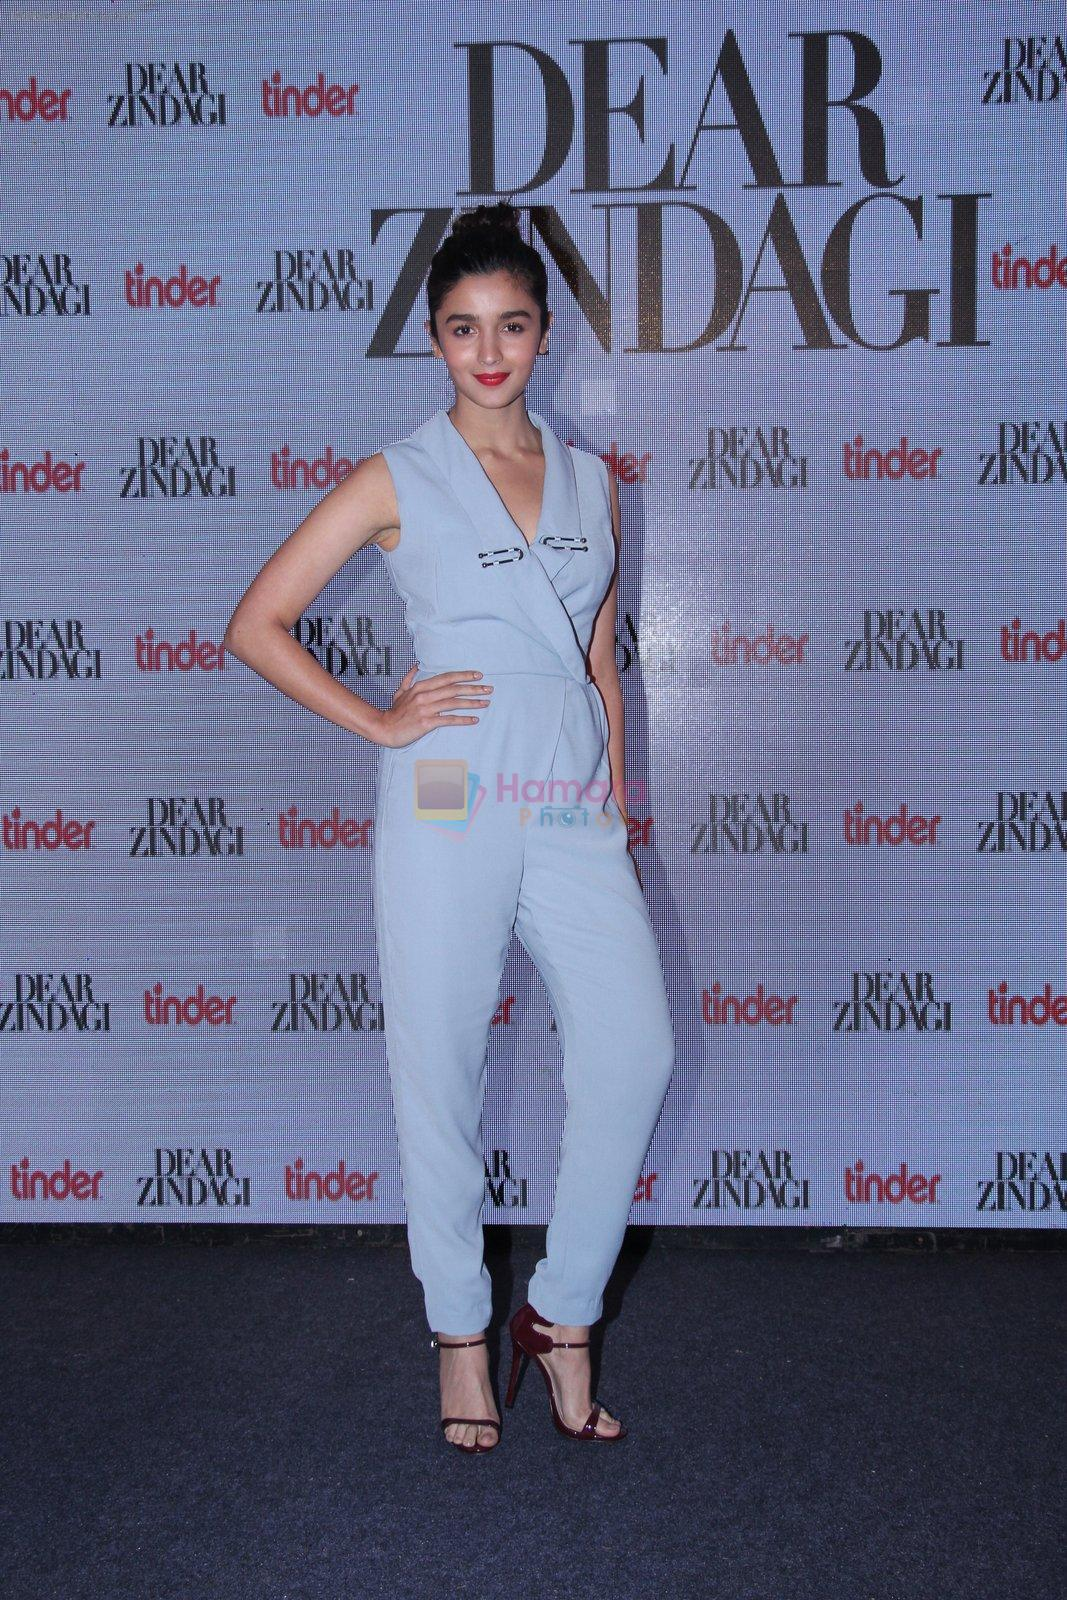 Alia Bhatt at Tinder bash on 17th Nov 2016